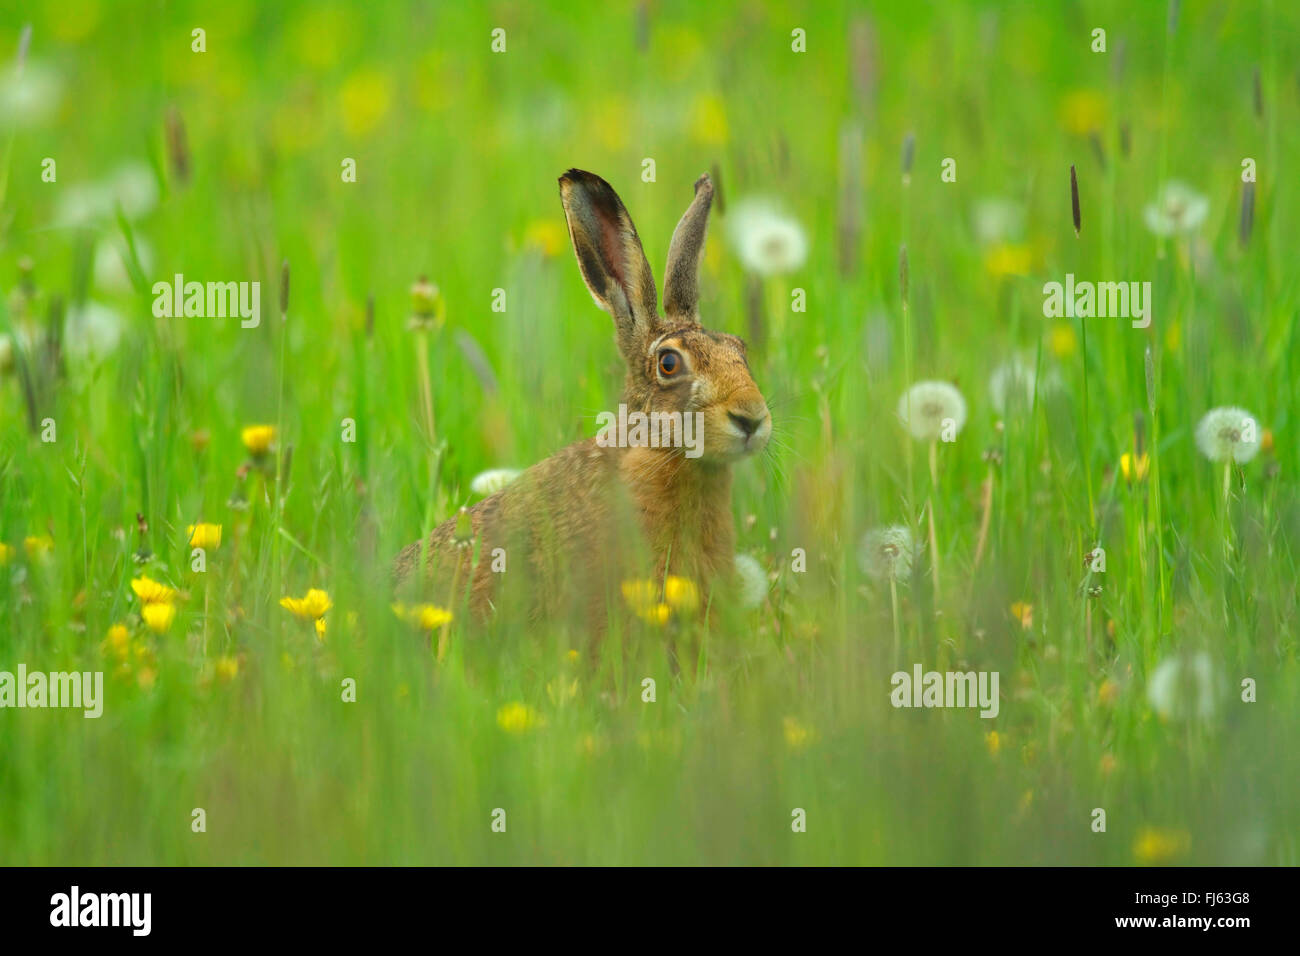 European hare, Brown hare (Lepus europaeus), sits in a spring meadow, Germany - Stock Image